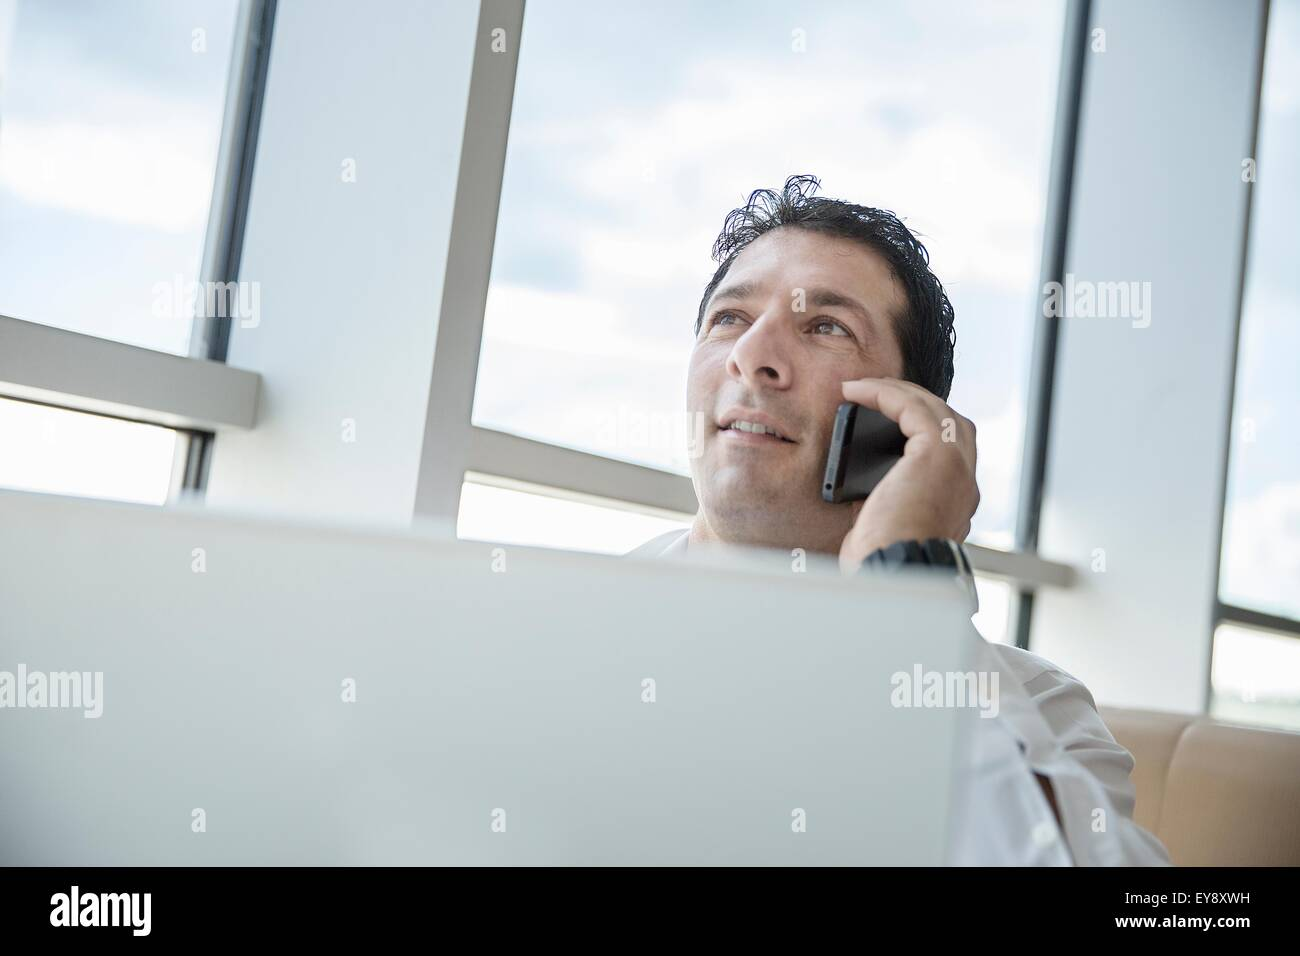 Man in airport lounge, talking on smartphone - Stock Image